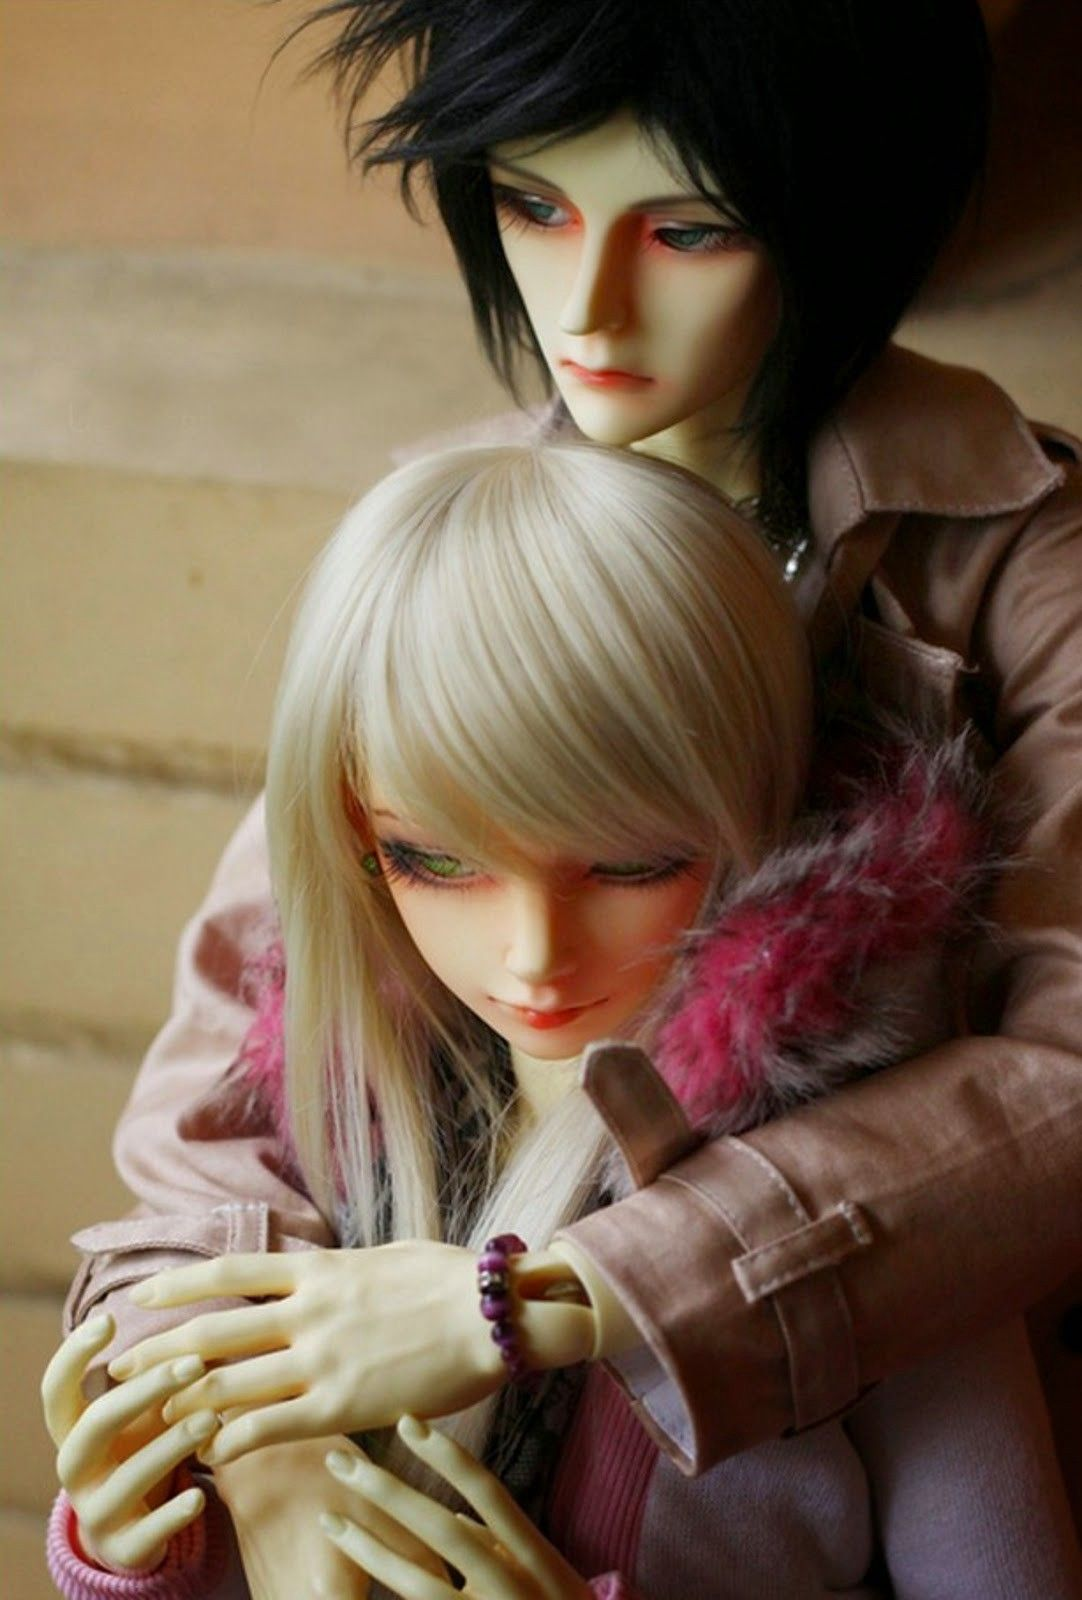 Boy Doll Wallpapers - Wallpaper Cave